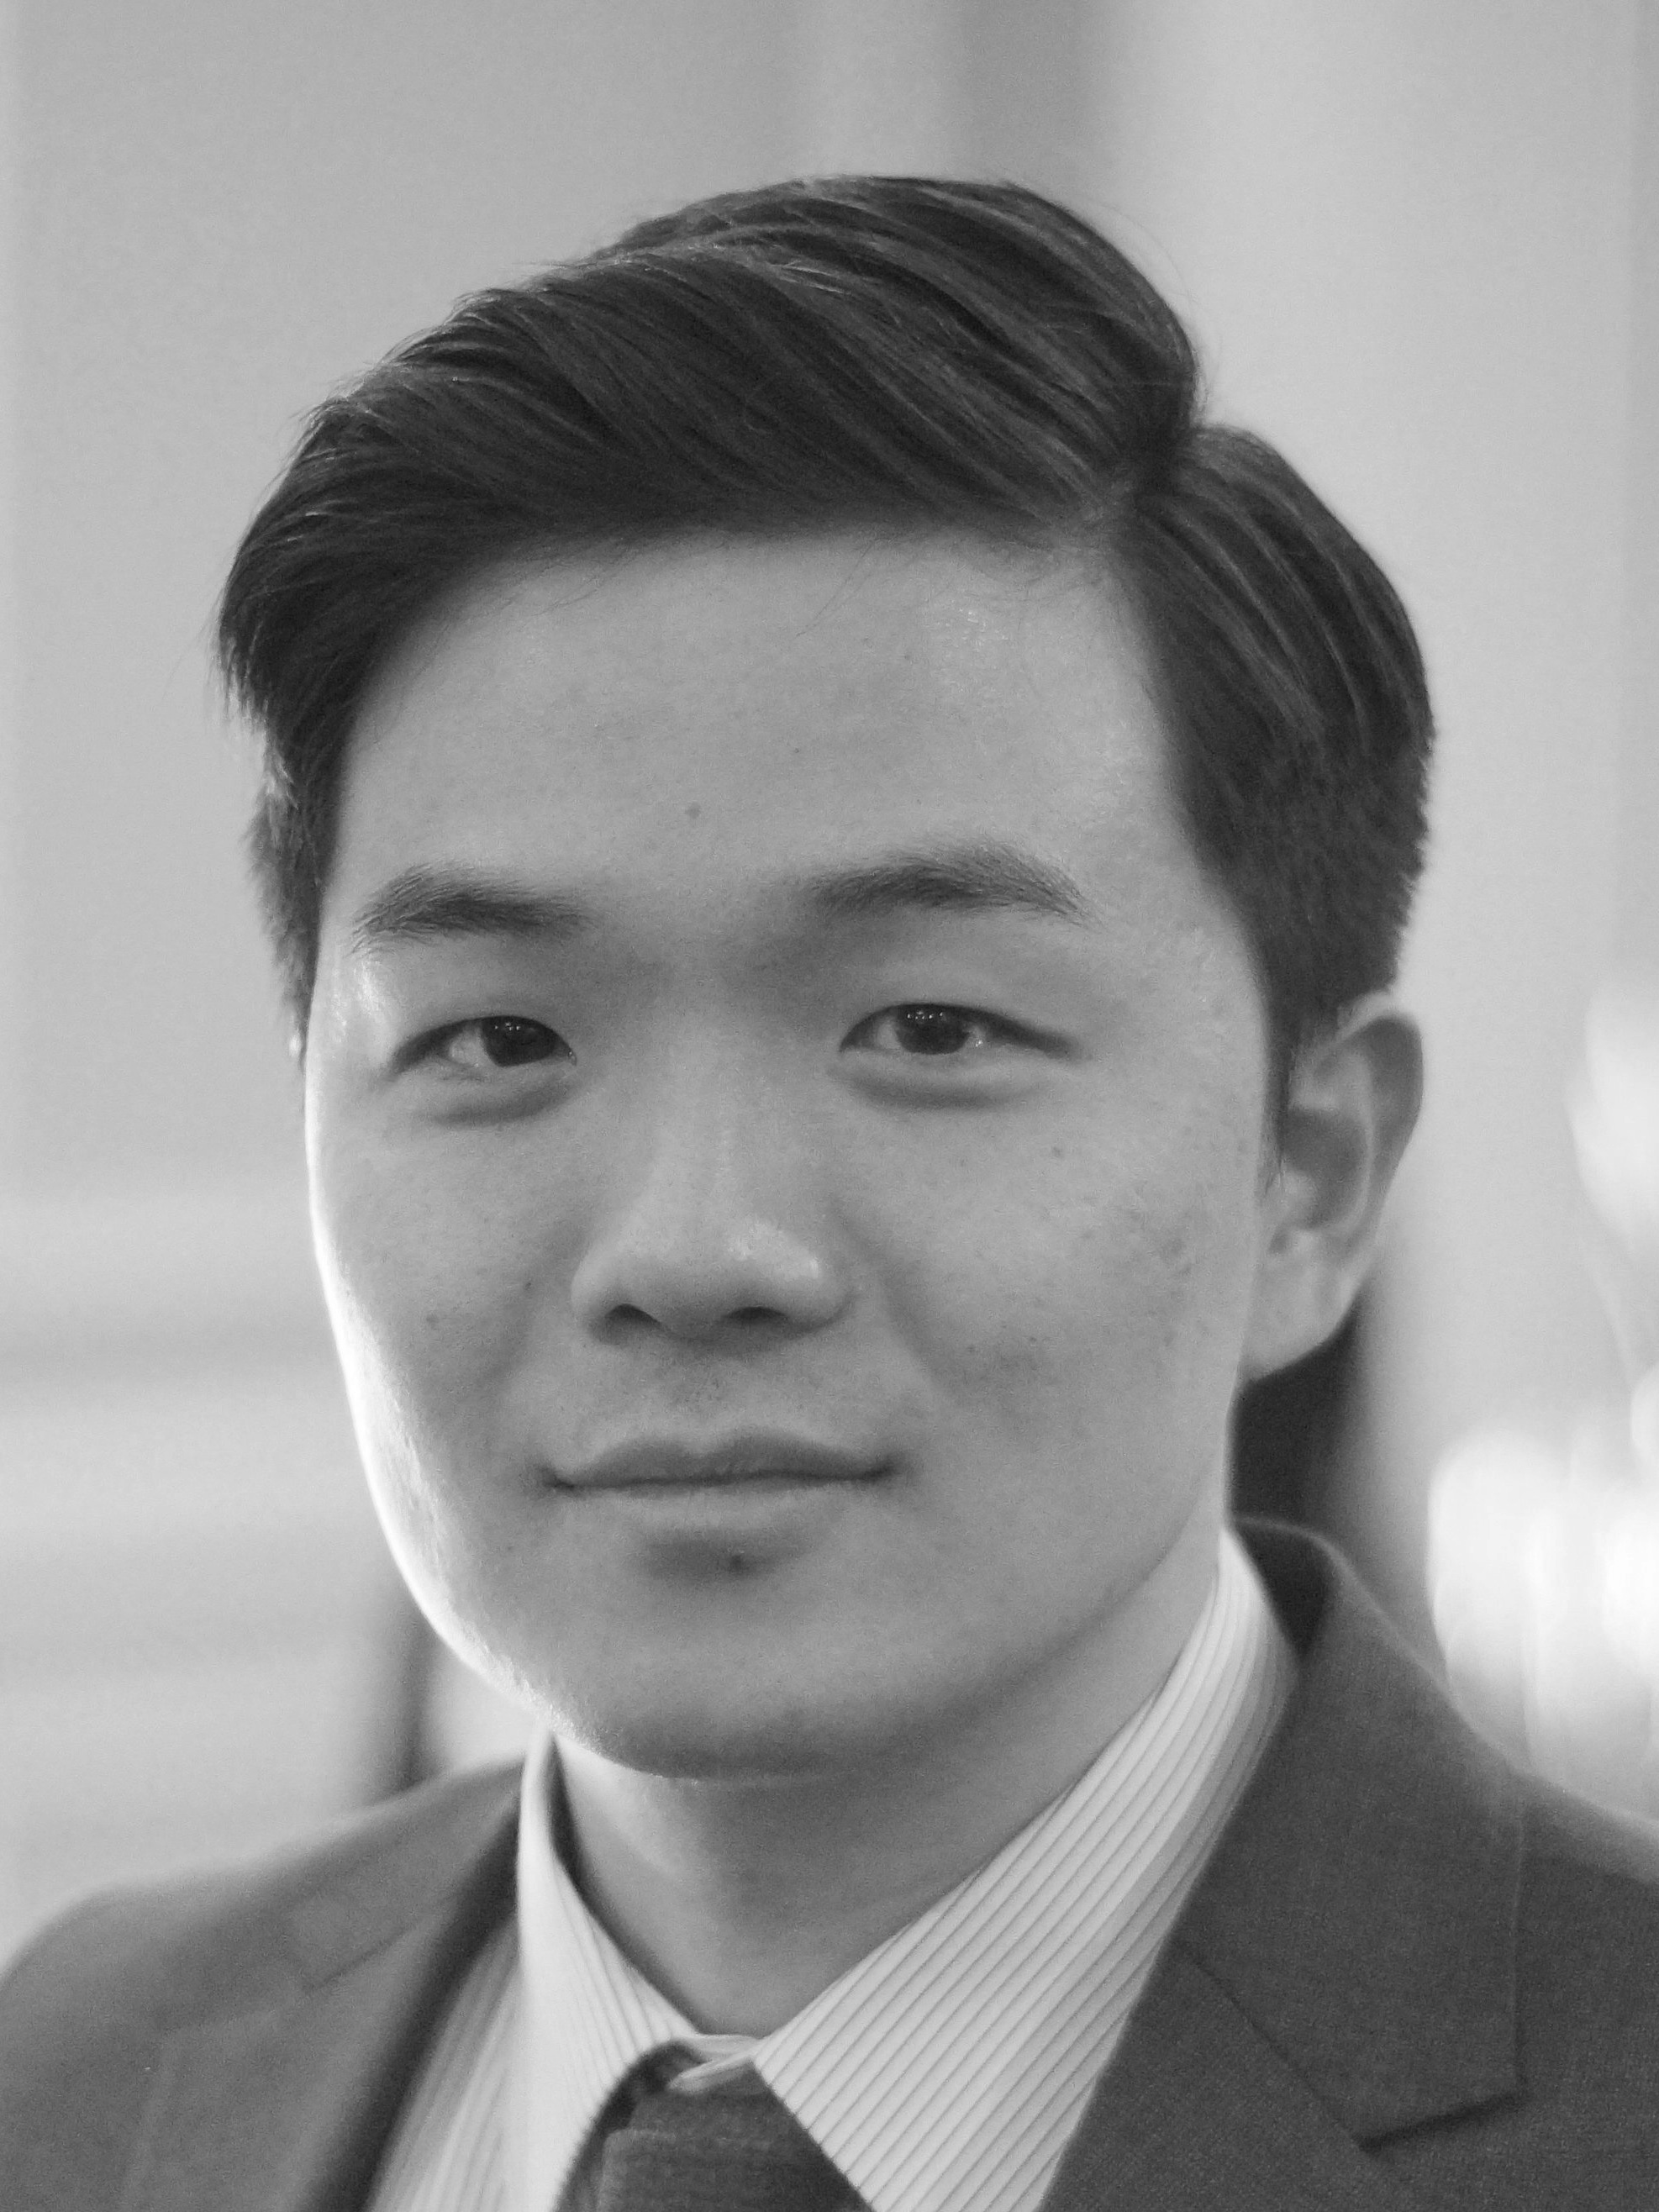 Dr. Jin Park - Dr. Park completed his doctor of dental surgery program from the University of Western Ontario. Prior to that, he obtained his bachelor of science degree with focus on life sciences, from the University of British Columbia.